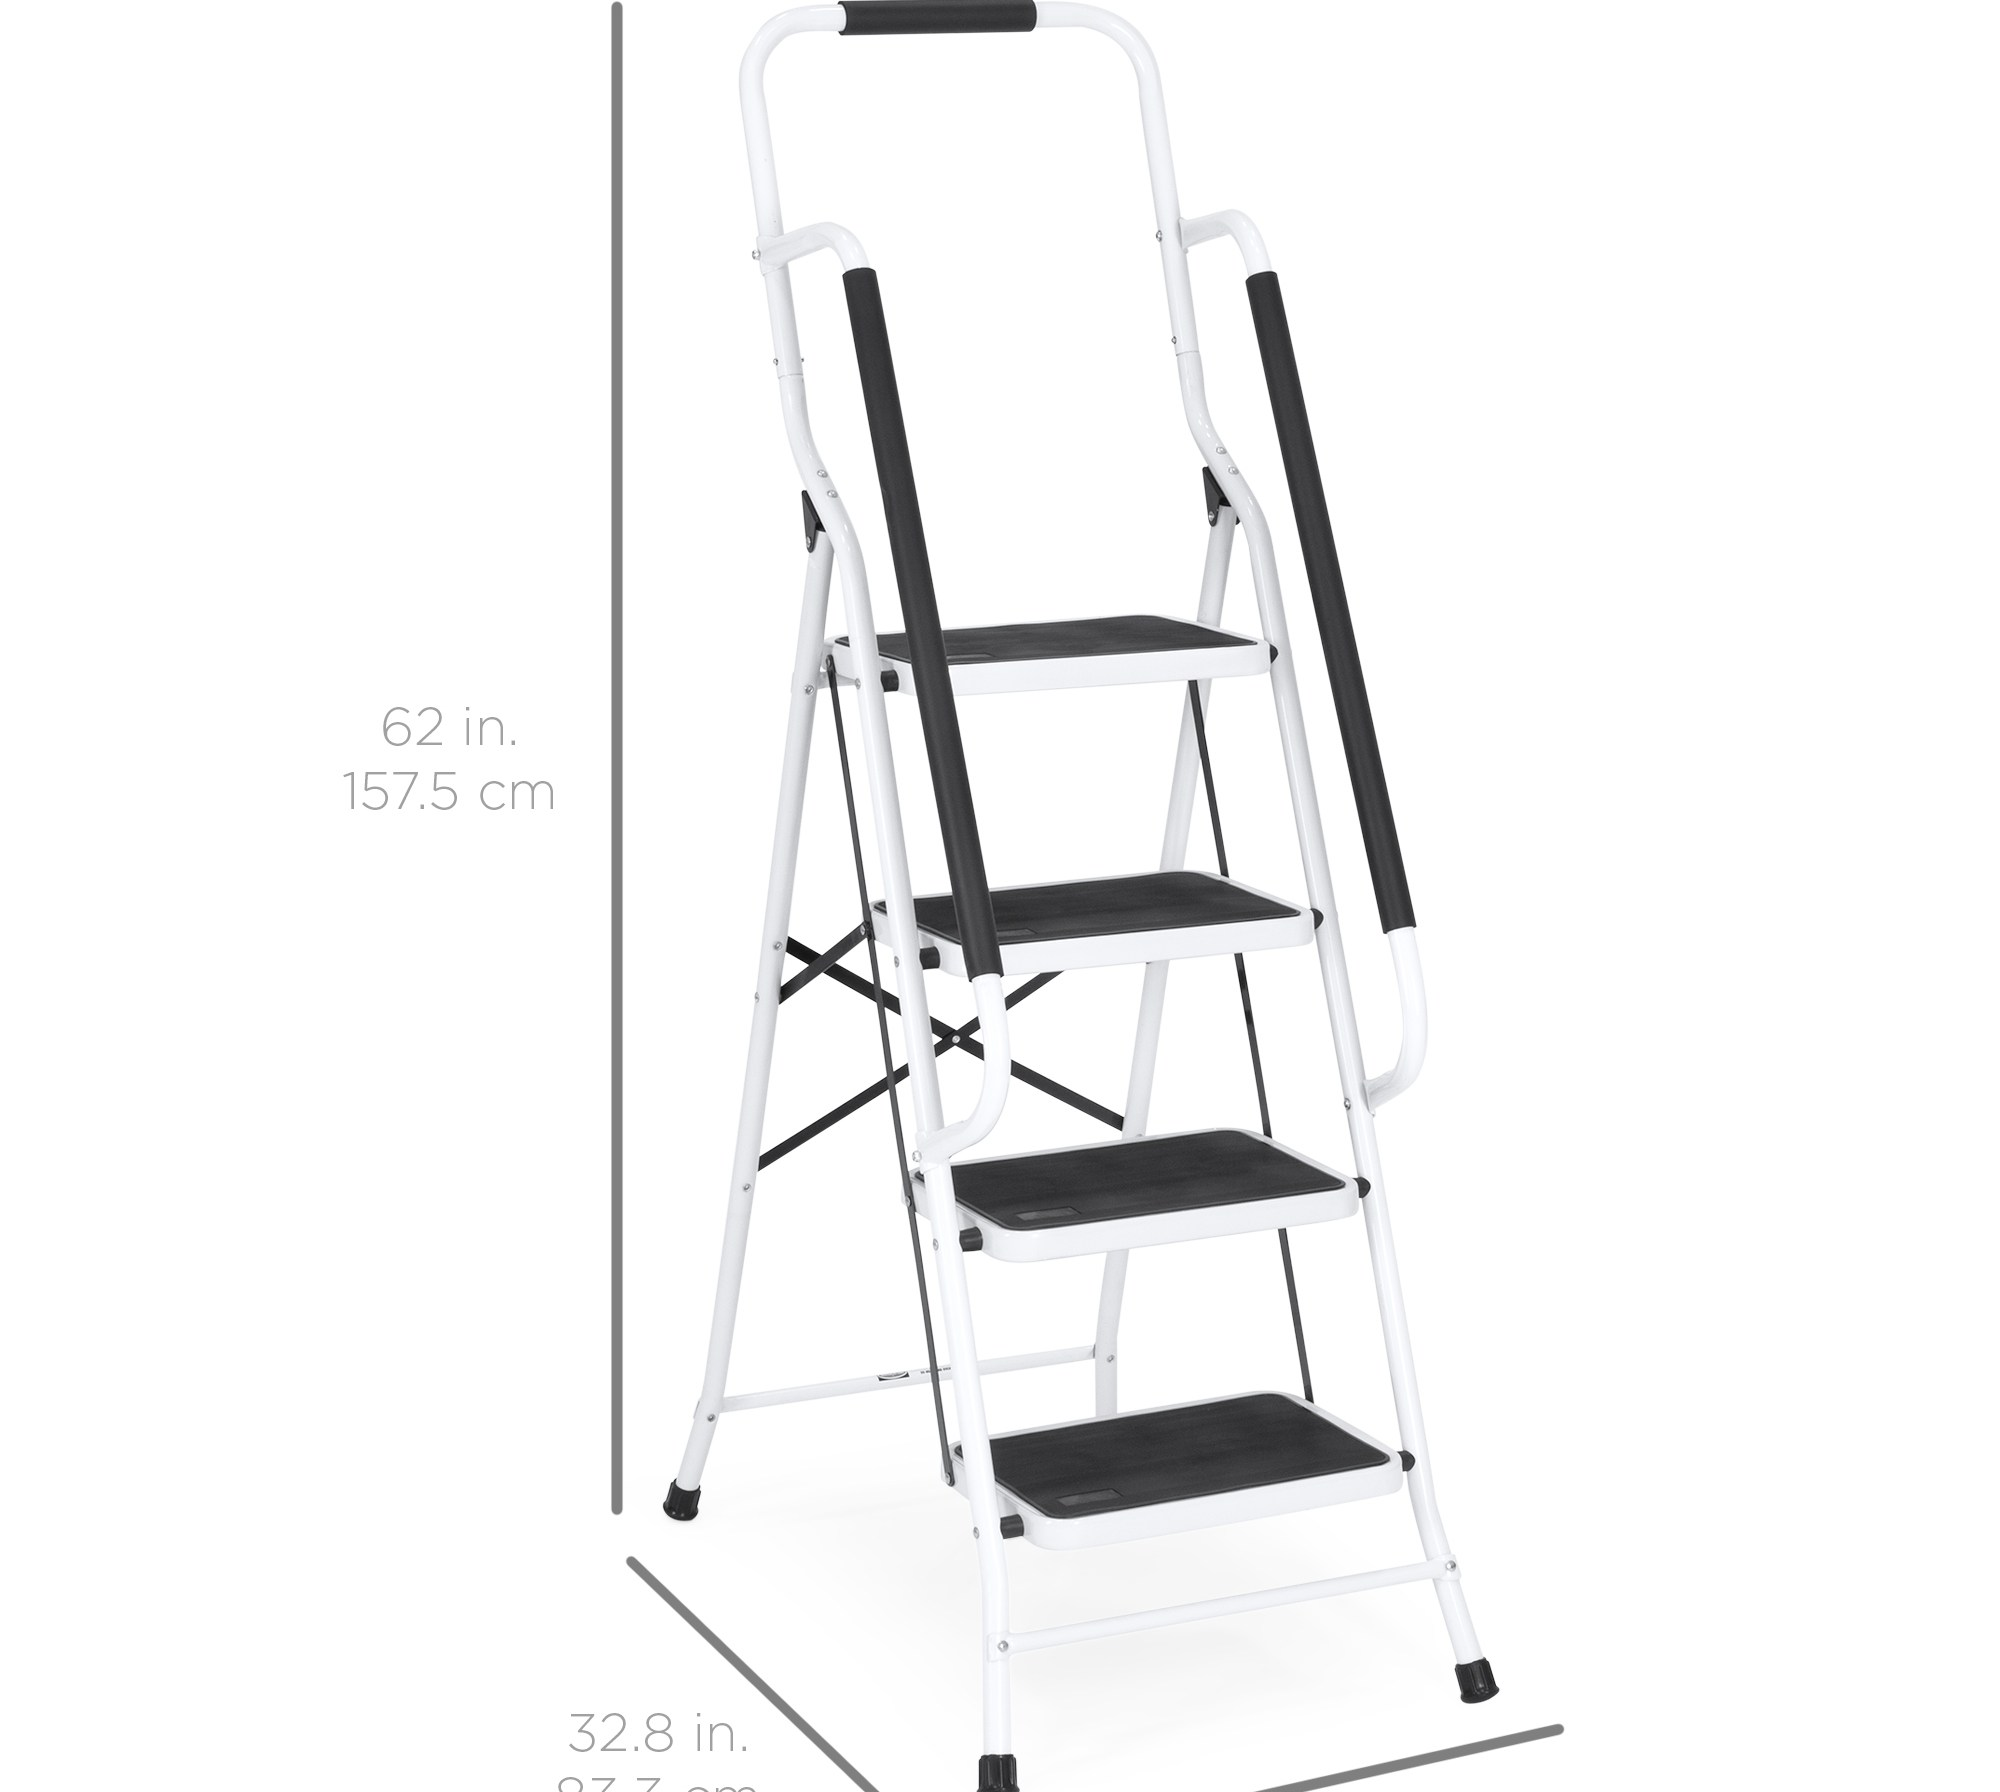 Best Choice Products 4 Step Portable Folding Anti Slip Steel   Portable Steps With Handrail   3 Step   Free Standing   Camper   Stair   Safety Step Ladder 4 Step